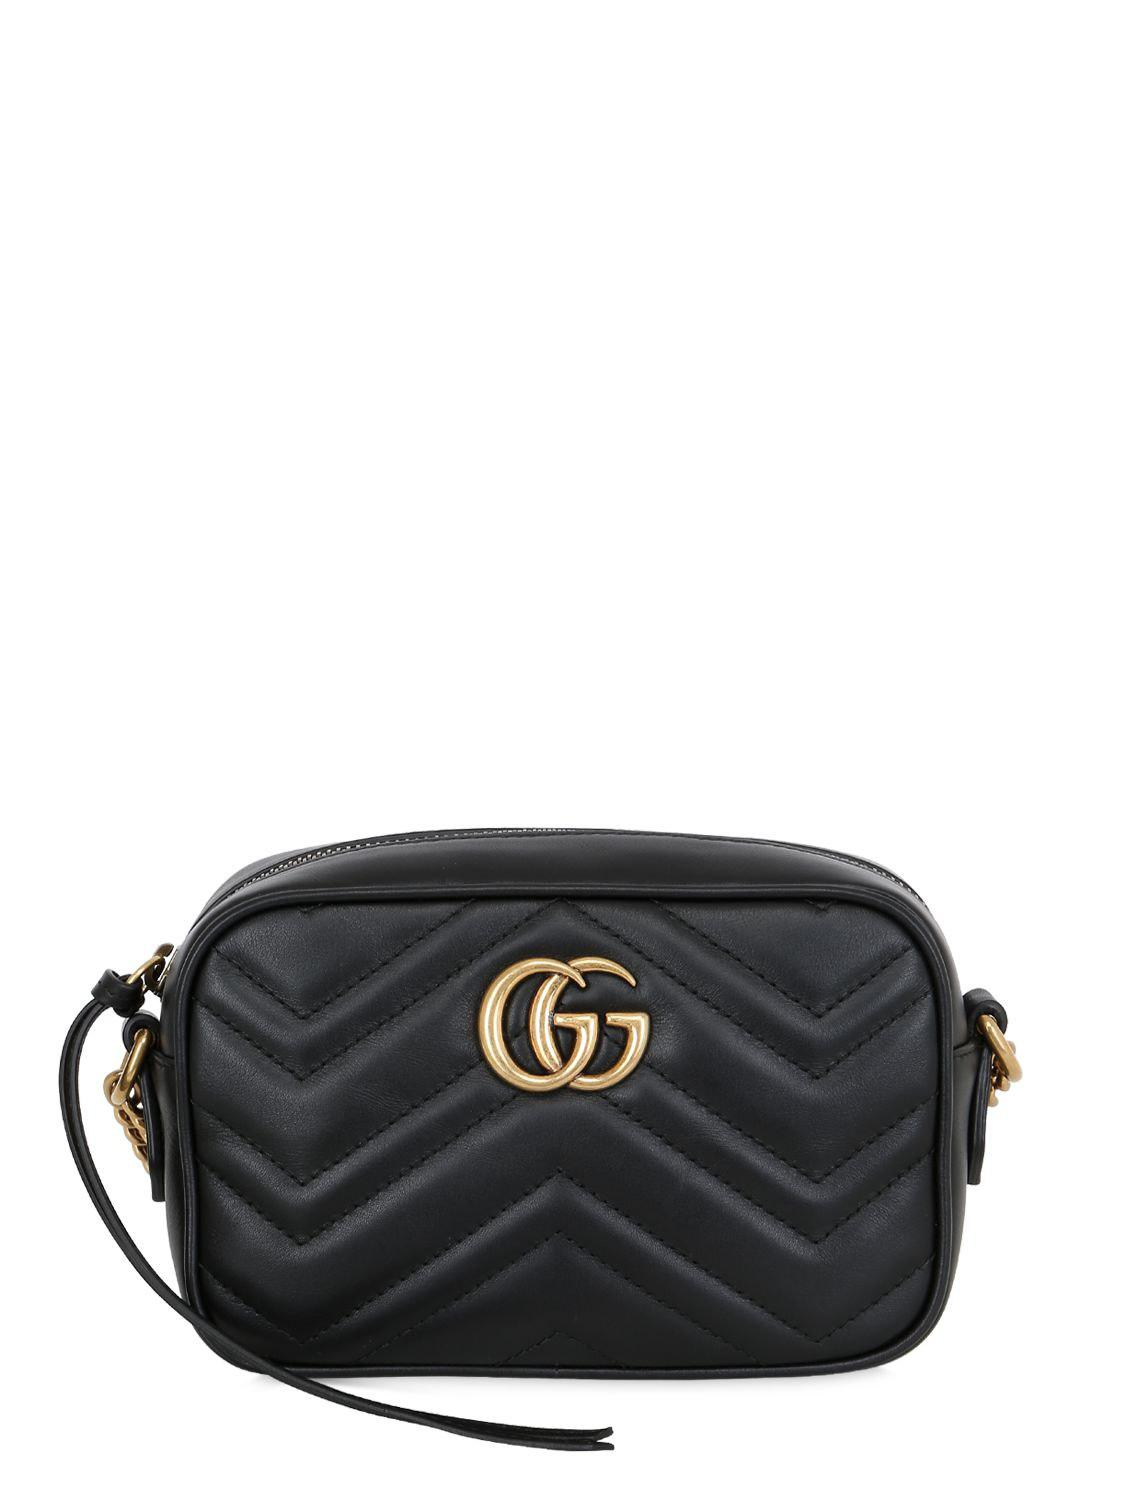 857981835bb Lyst - Gucci Mini Gg Marmont 2.0 Leather Bag in Black